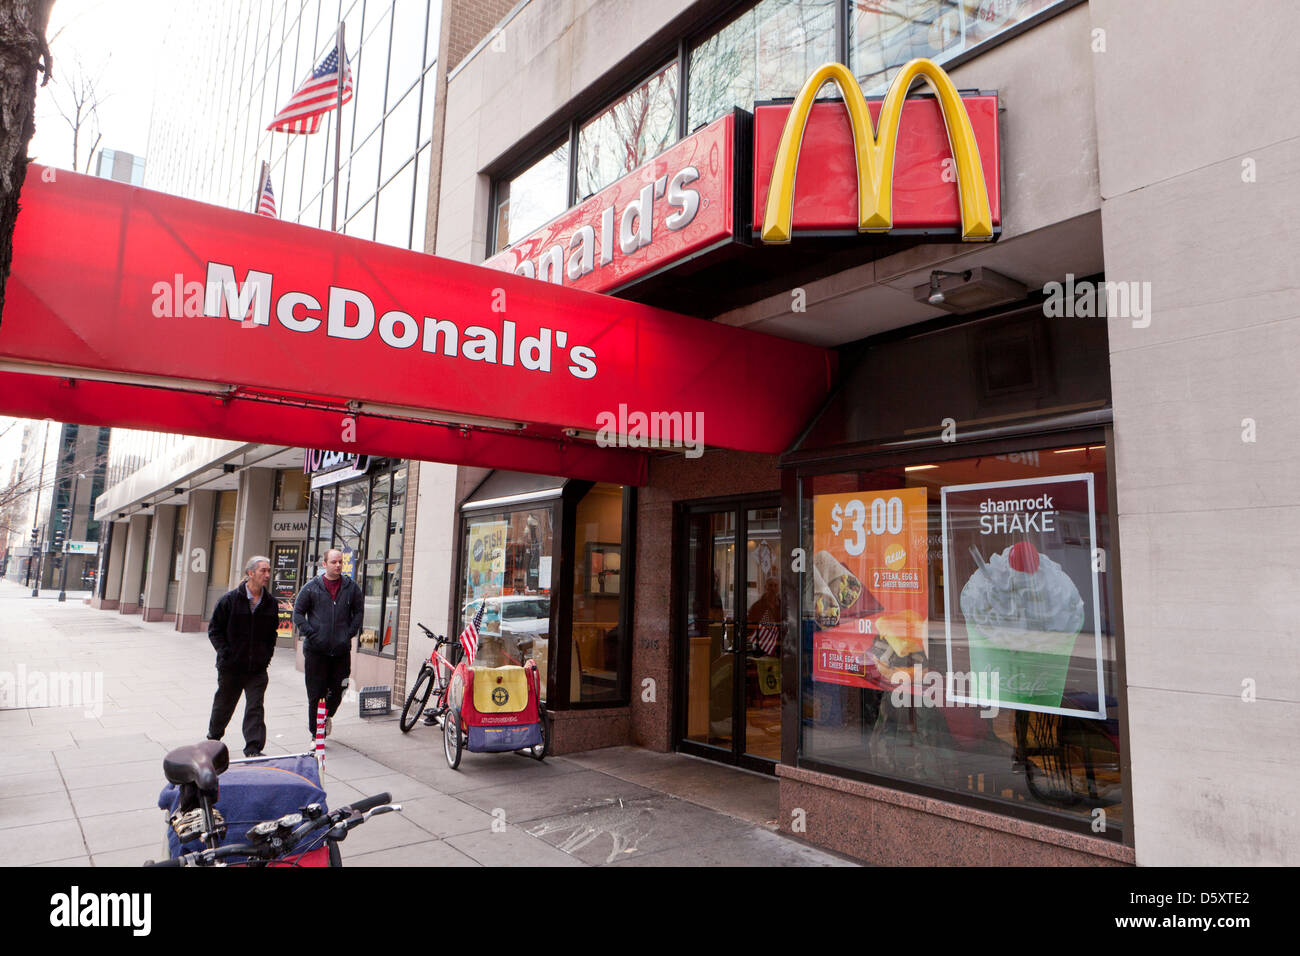 McDonald's storefront - Stock Image